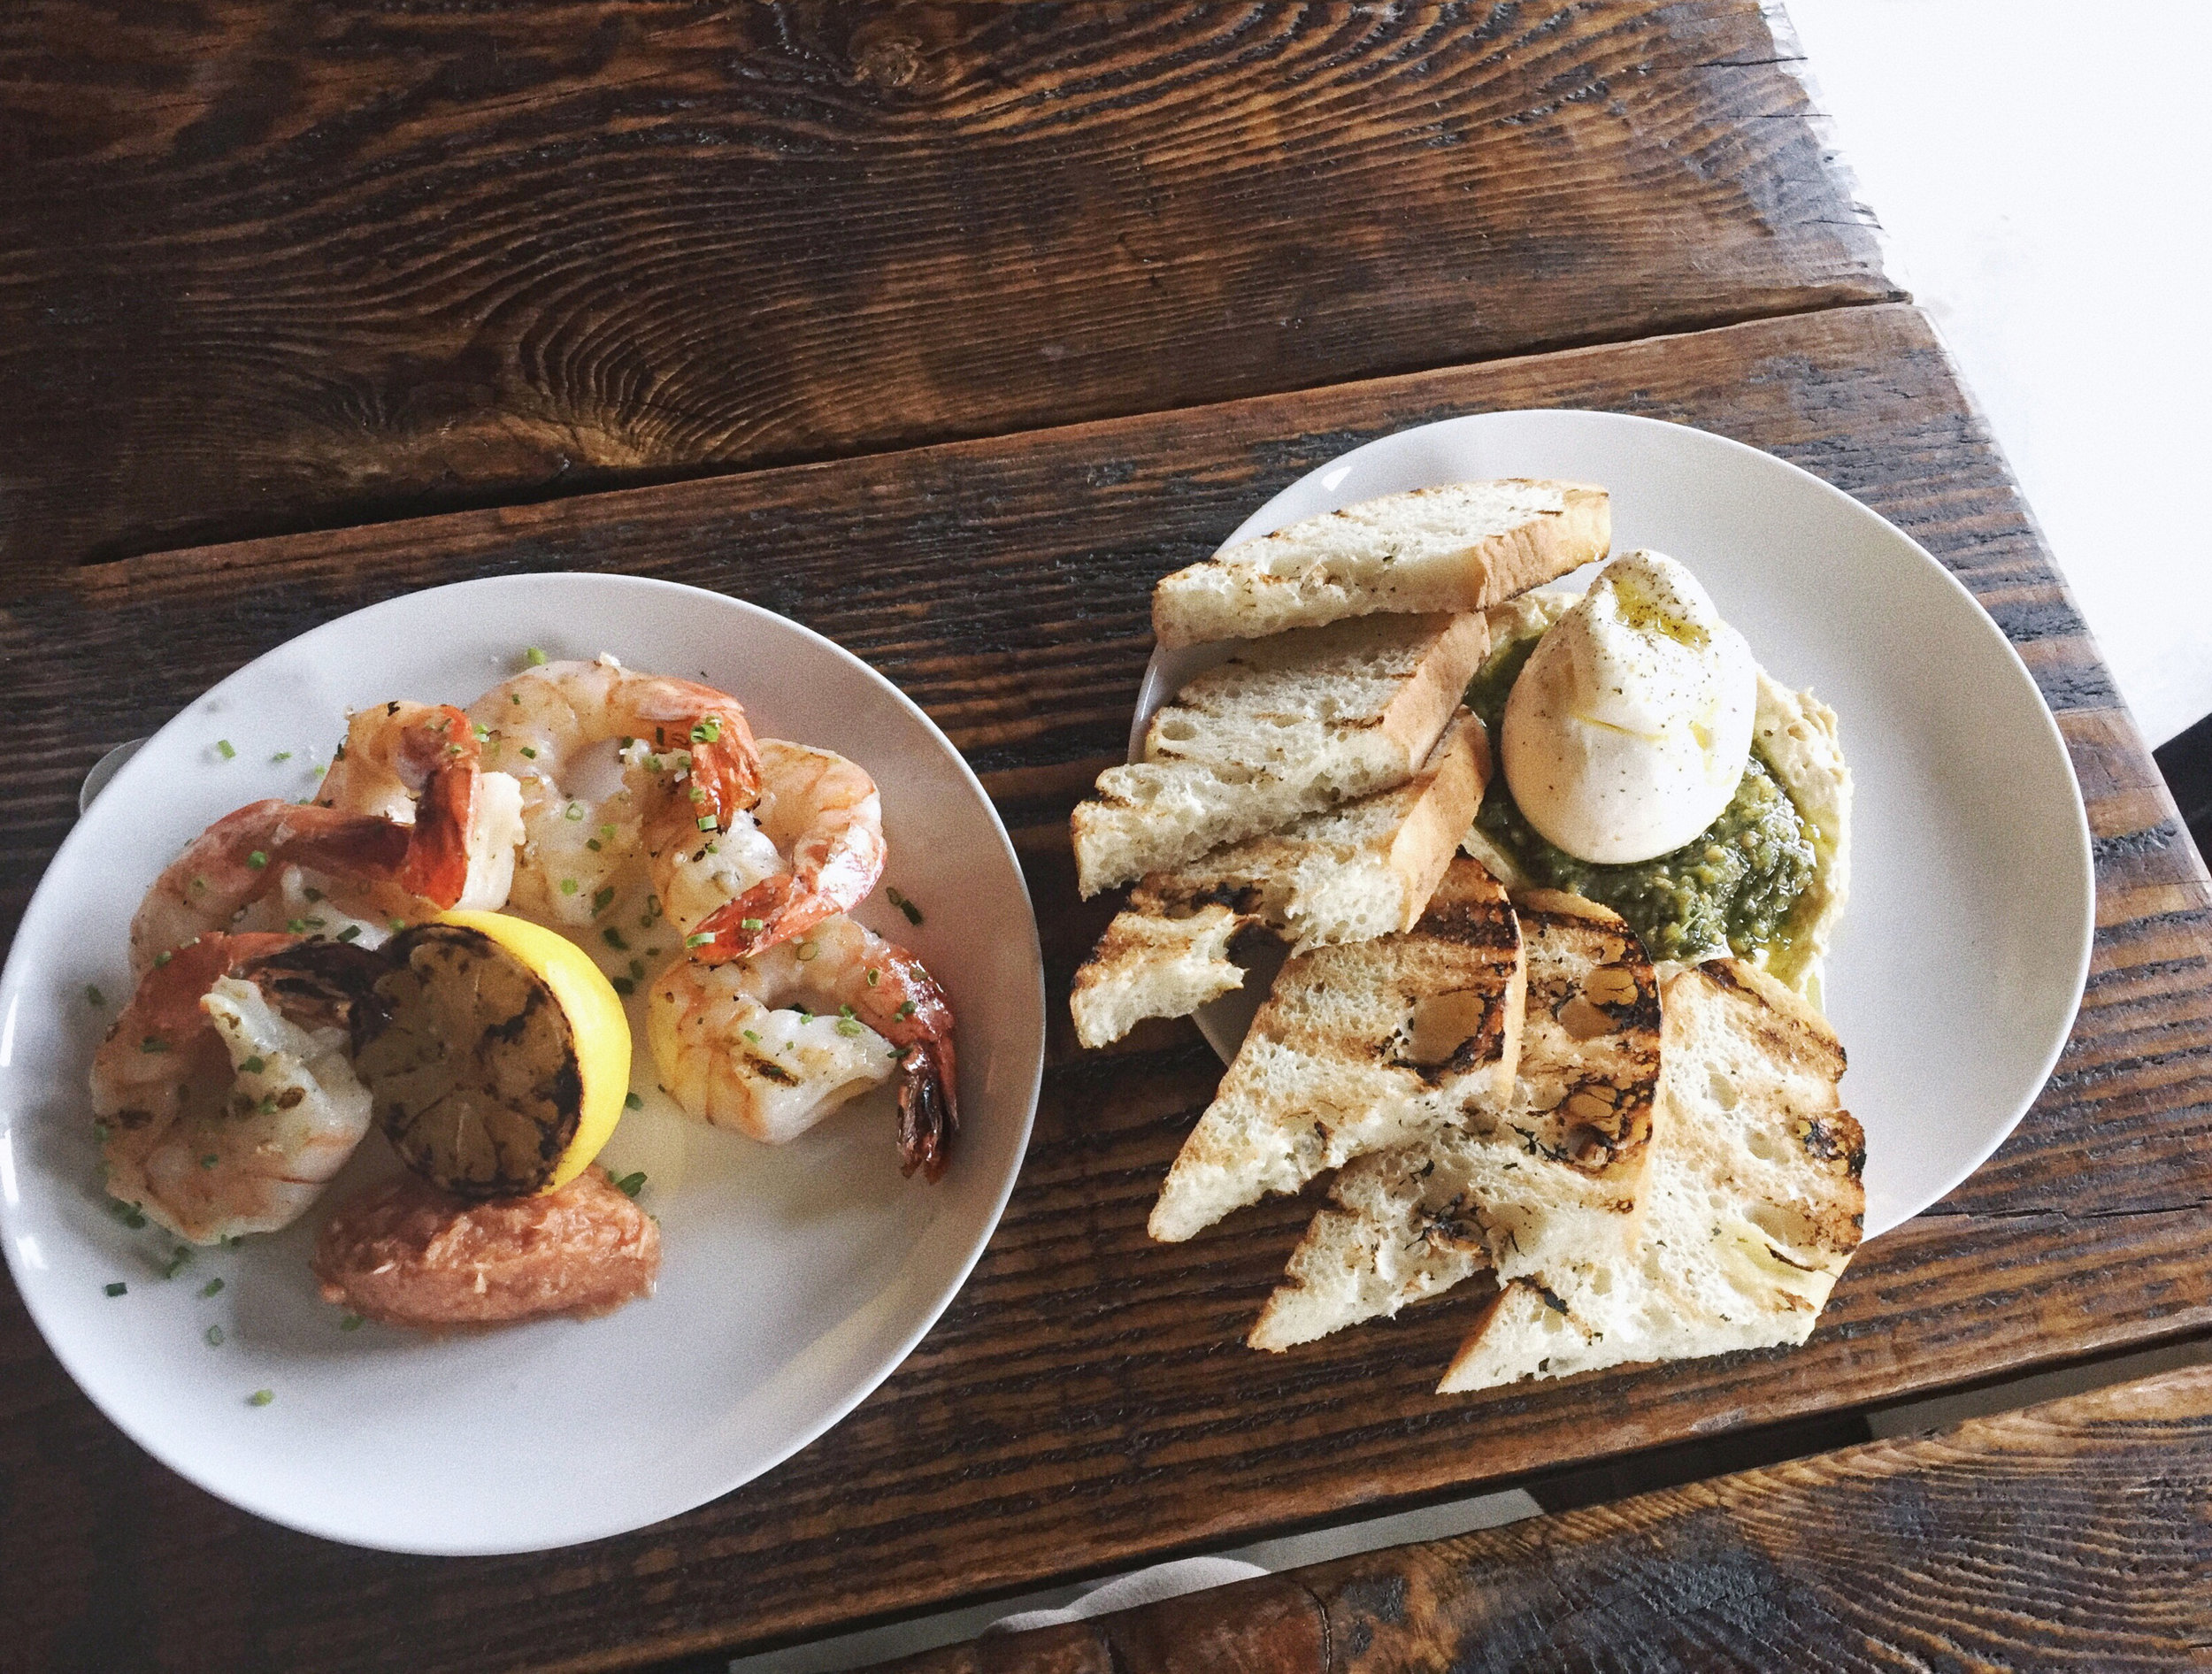 Boxcar Social | Grilled jumbo shrimp, garlic butter, cocktail sauce, lemon & local burrata, chickpea hummus, walnut pesto with grilled rosemary focaccia.